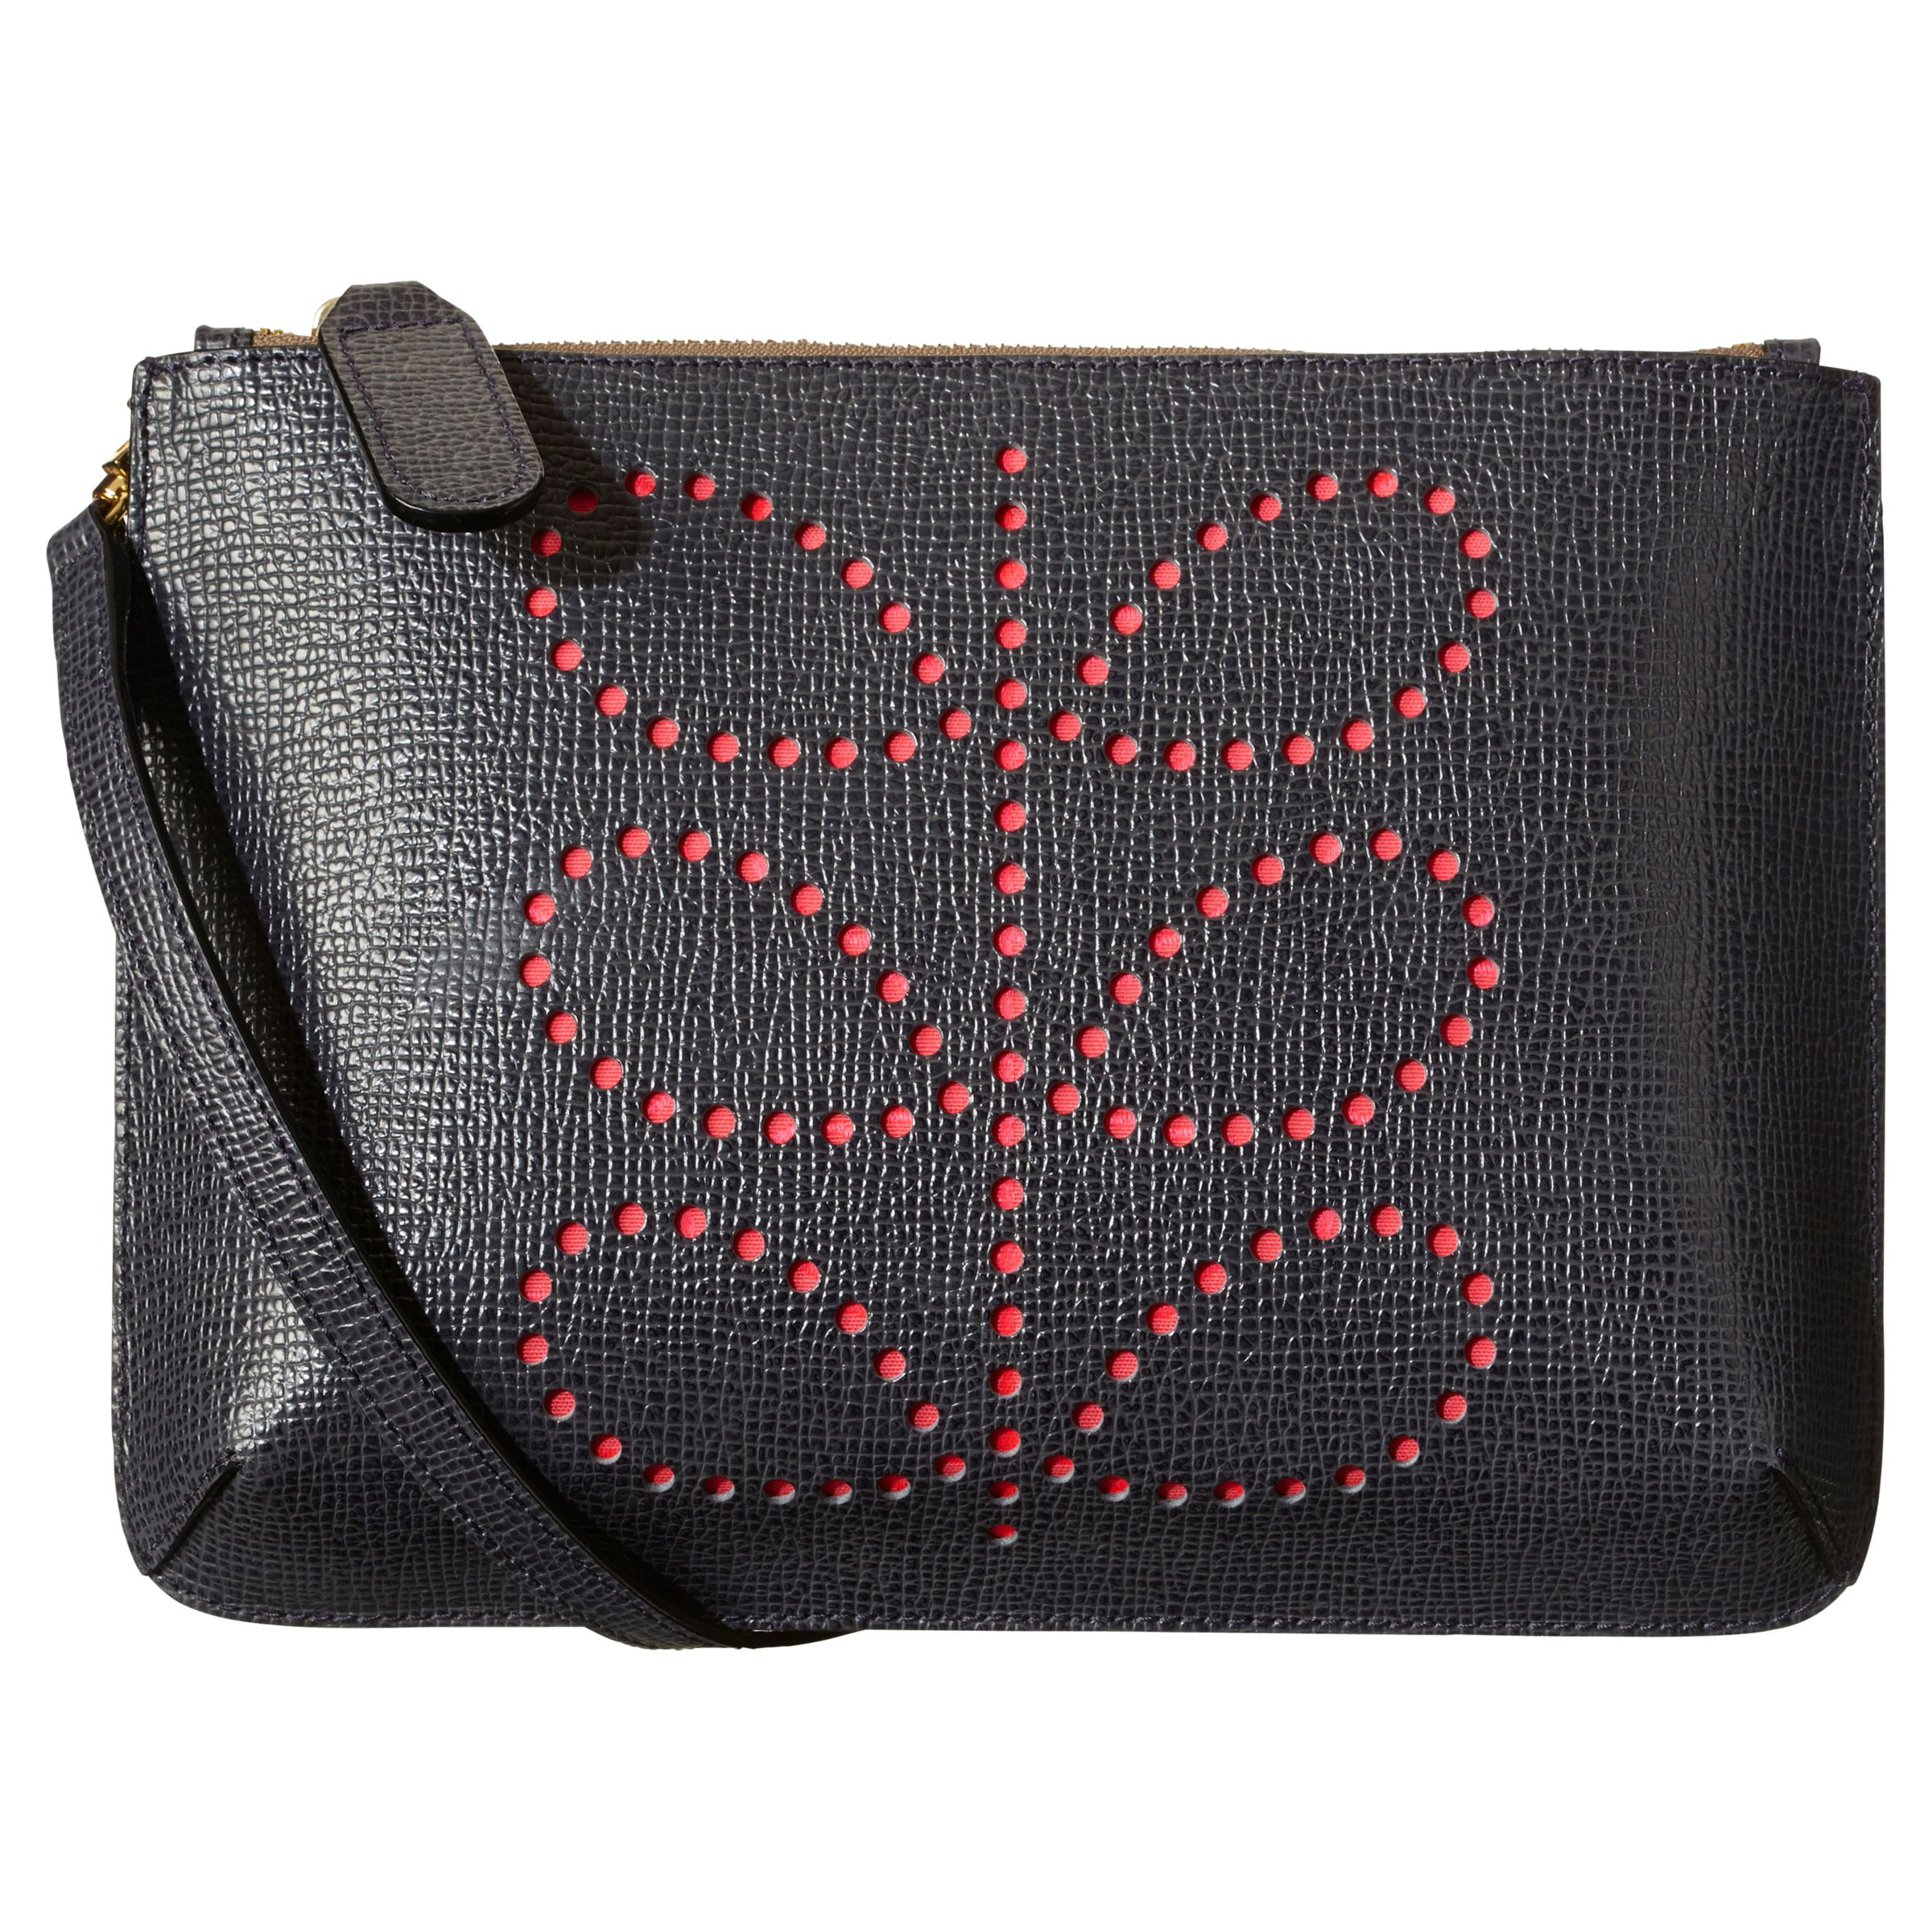 Orla Kiely Exclus Forget Me Not Leather Across Body Bag